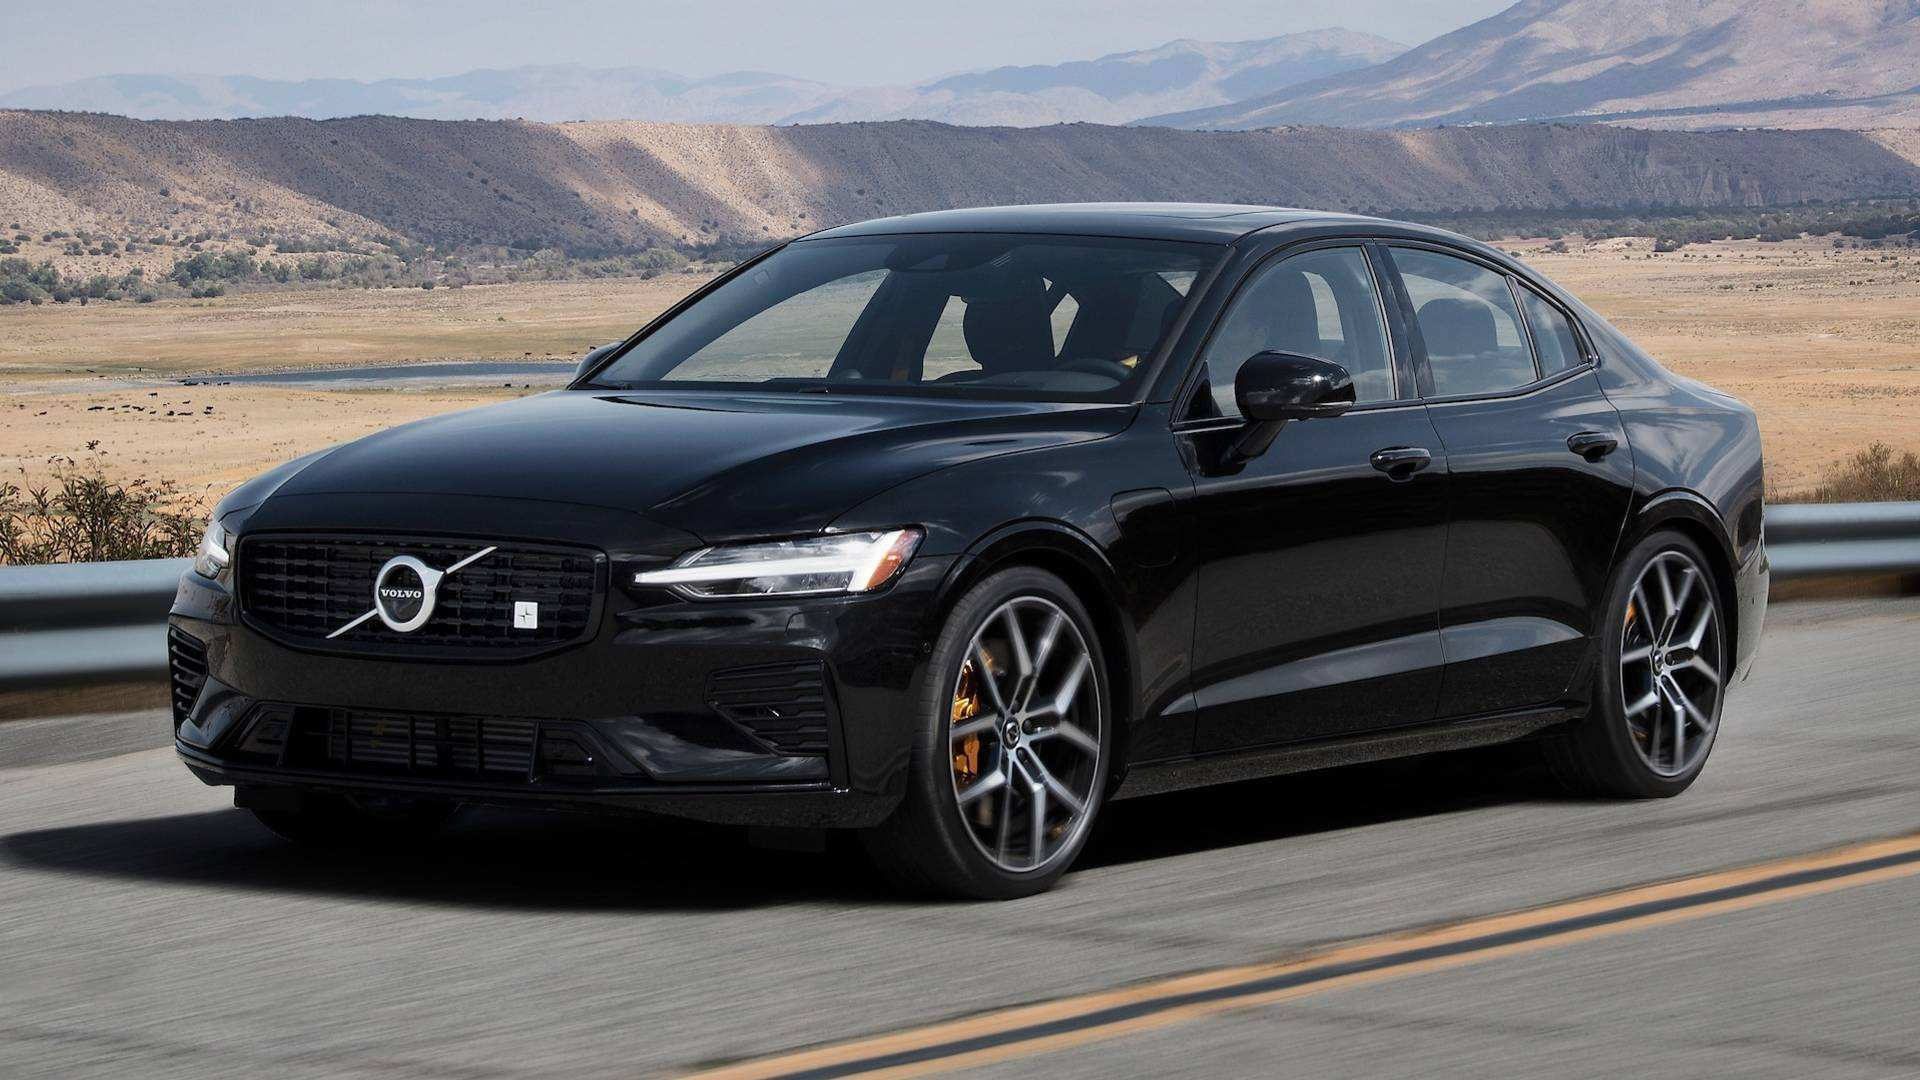 97 The Best 2019 Volvo S60 Price Design And Review